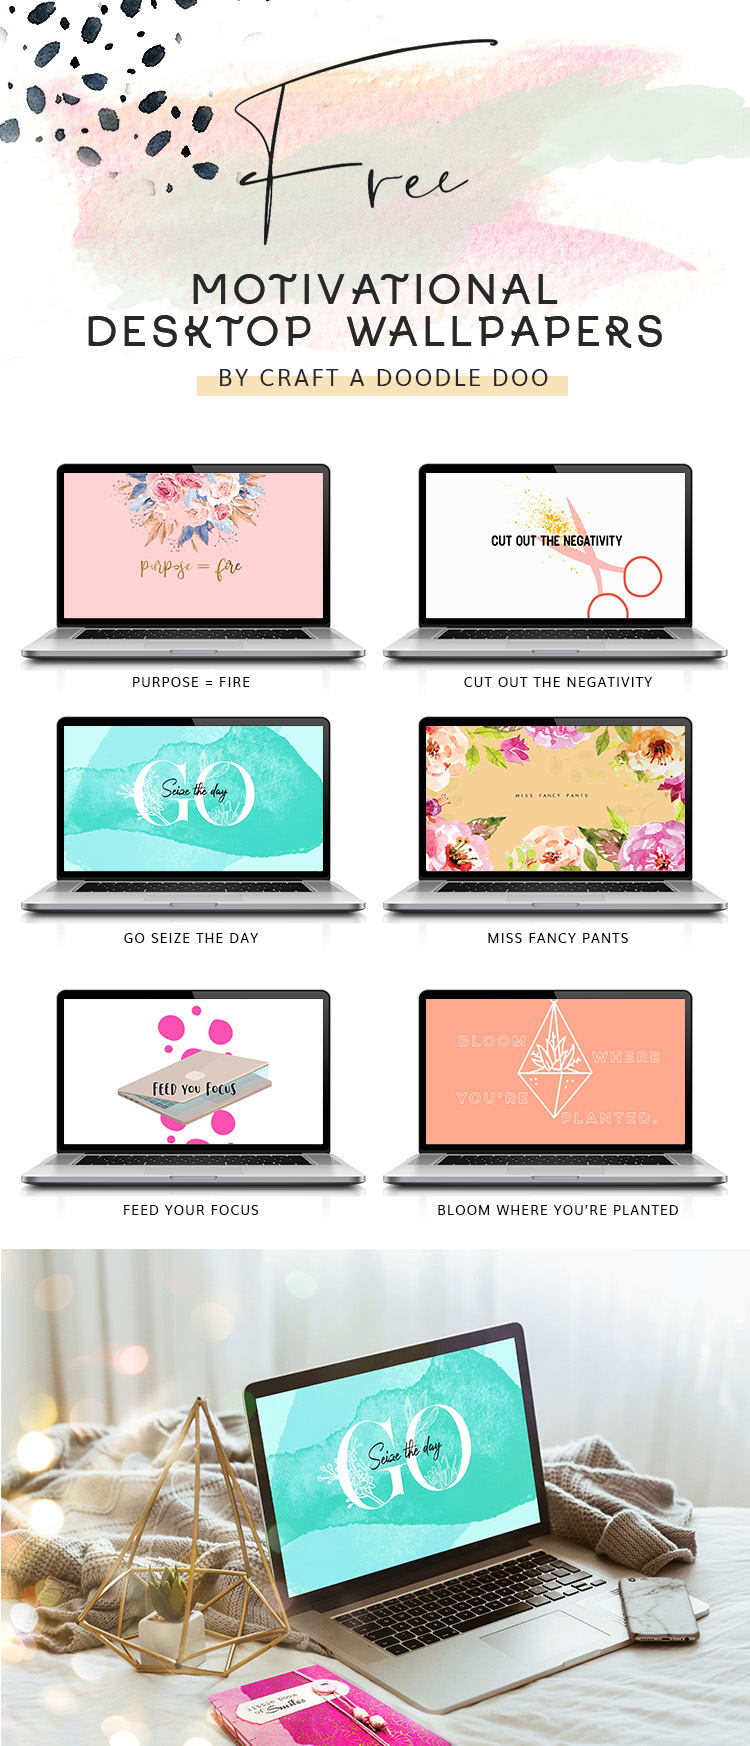 Free Motivational Wallpapers by Craft A Doodle Doo #free #girly #inspirational #desktop #wallpapers #patterns #motivational #quotes #graphics #download